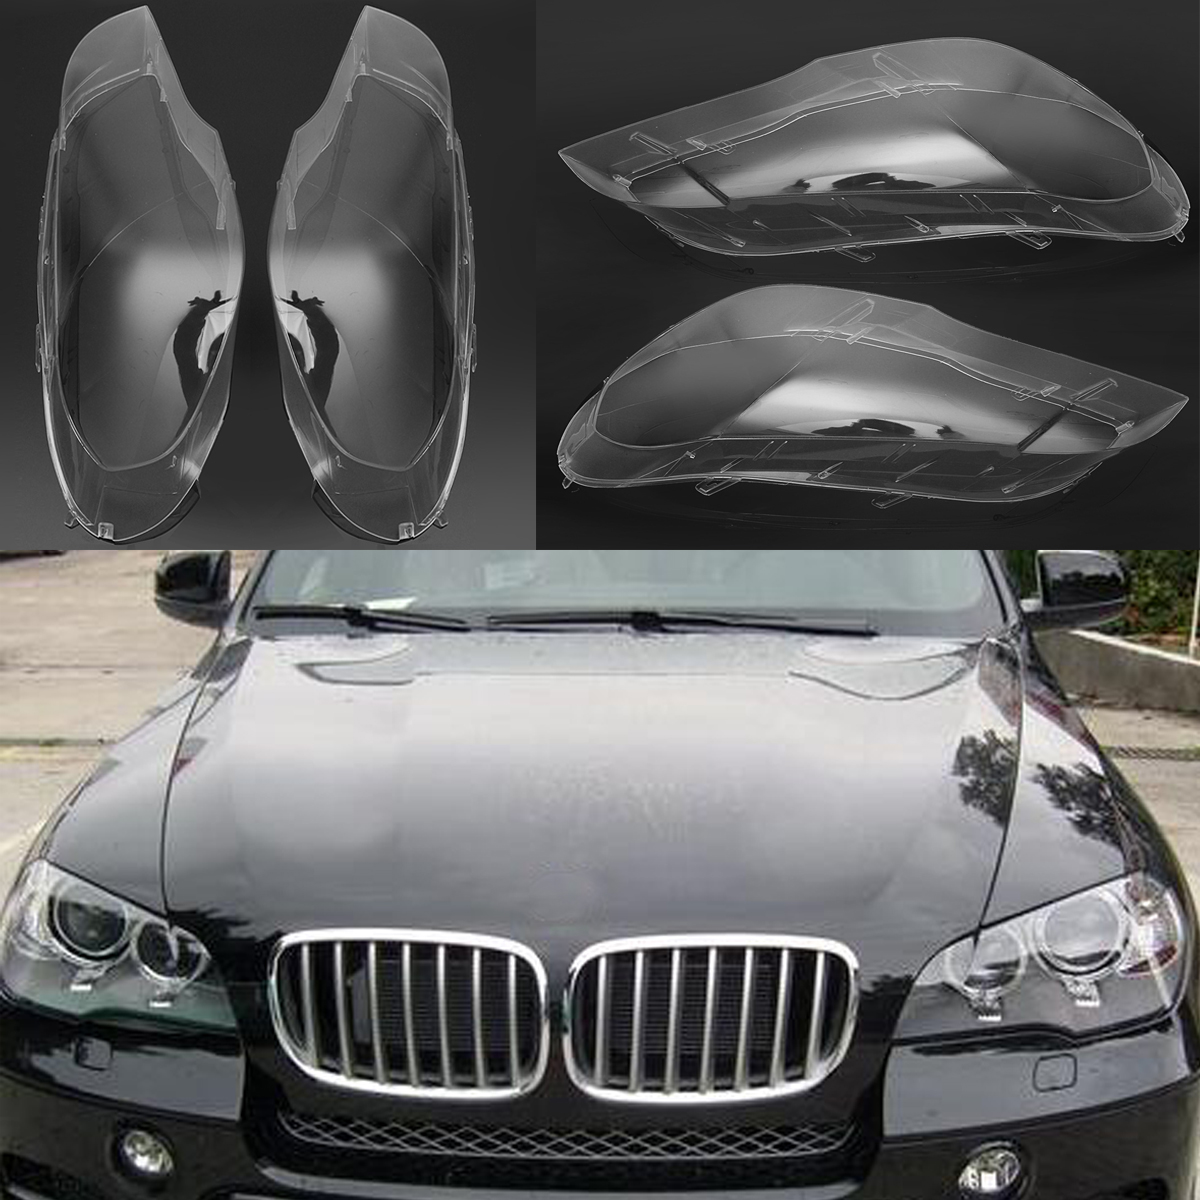 2Pcs Car Left &Right Headlamp Shell Headlight Lens Replacement Cover for BMW 2007-2012 X5 E70 Car Lights Headlight Lamp Case 2pcs polycarbonate headlamp headlight clear lens replacement covers case shell only xenon for bmw 3 e90 sedan e91 touring